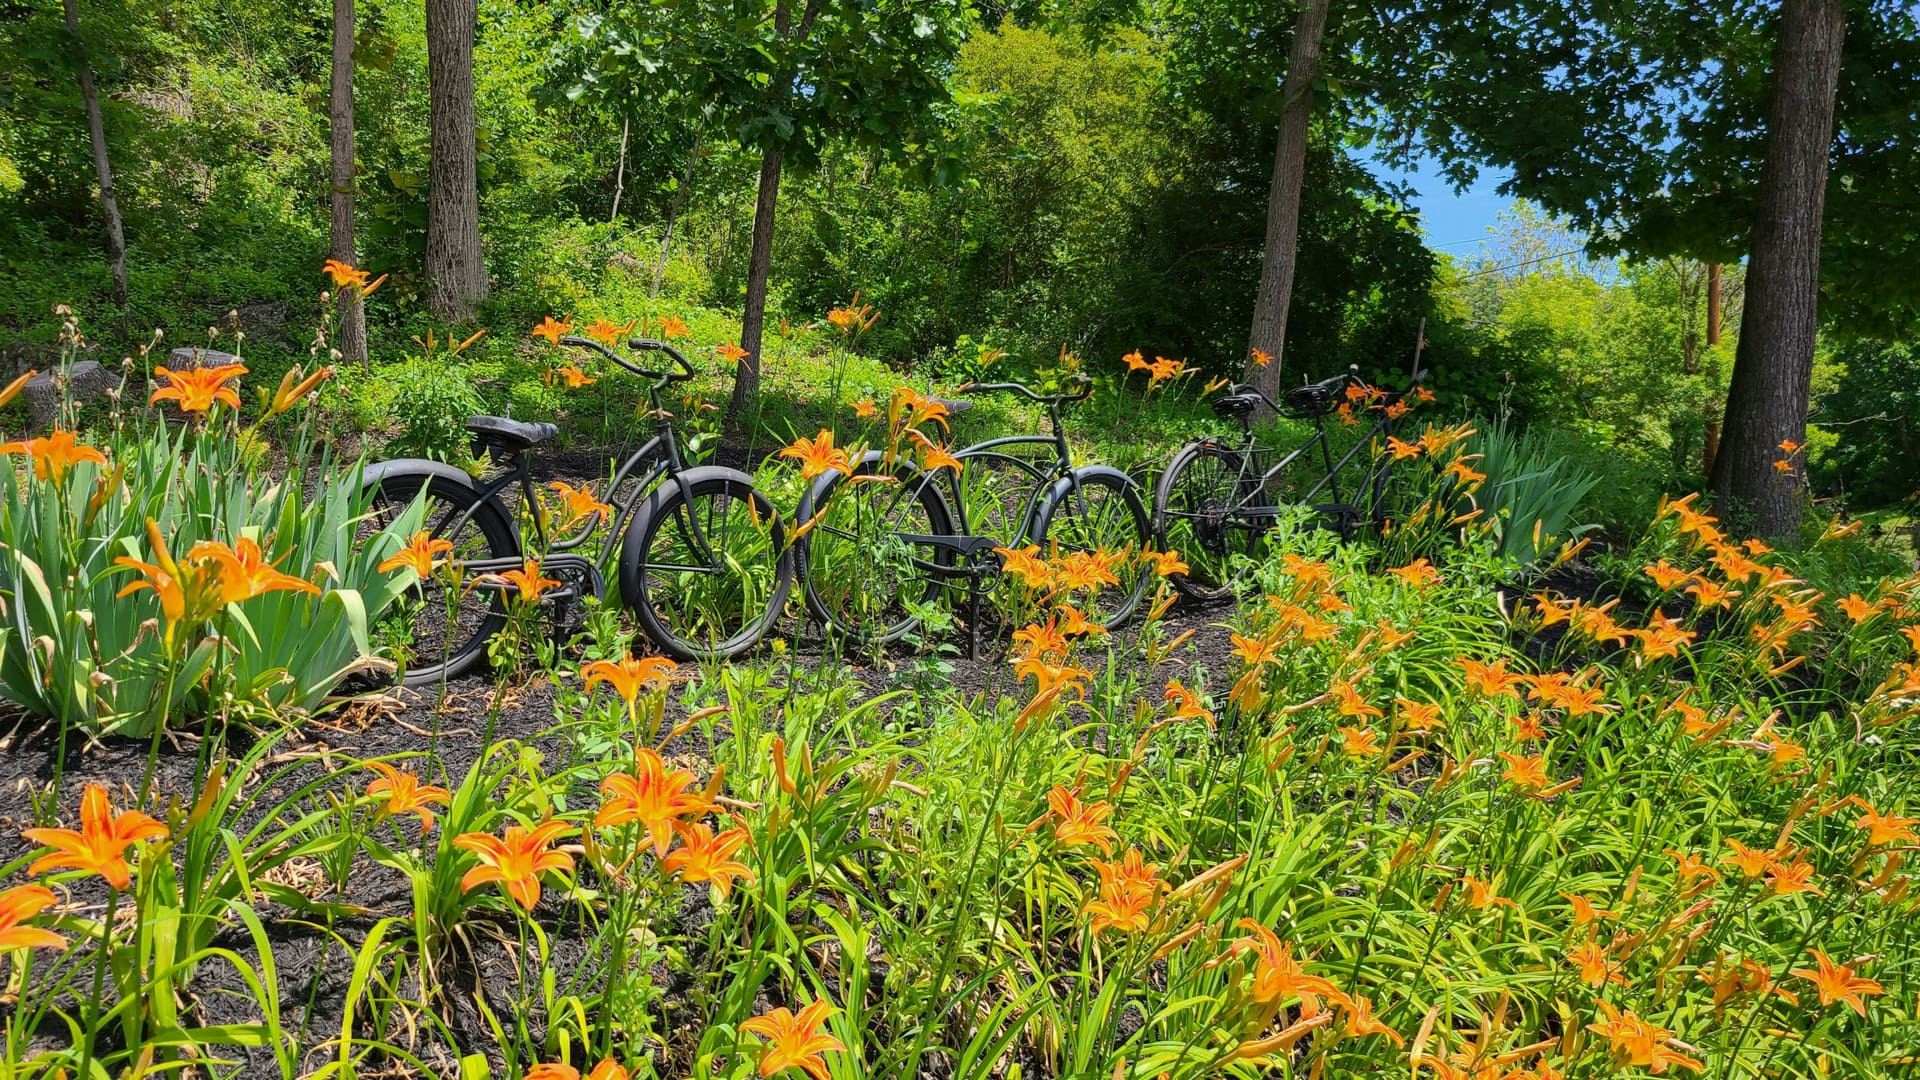 A line of rusty-looking bikes is staged as an art installation halfway up a hill